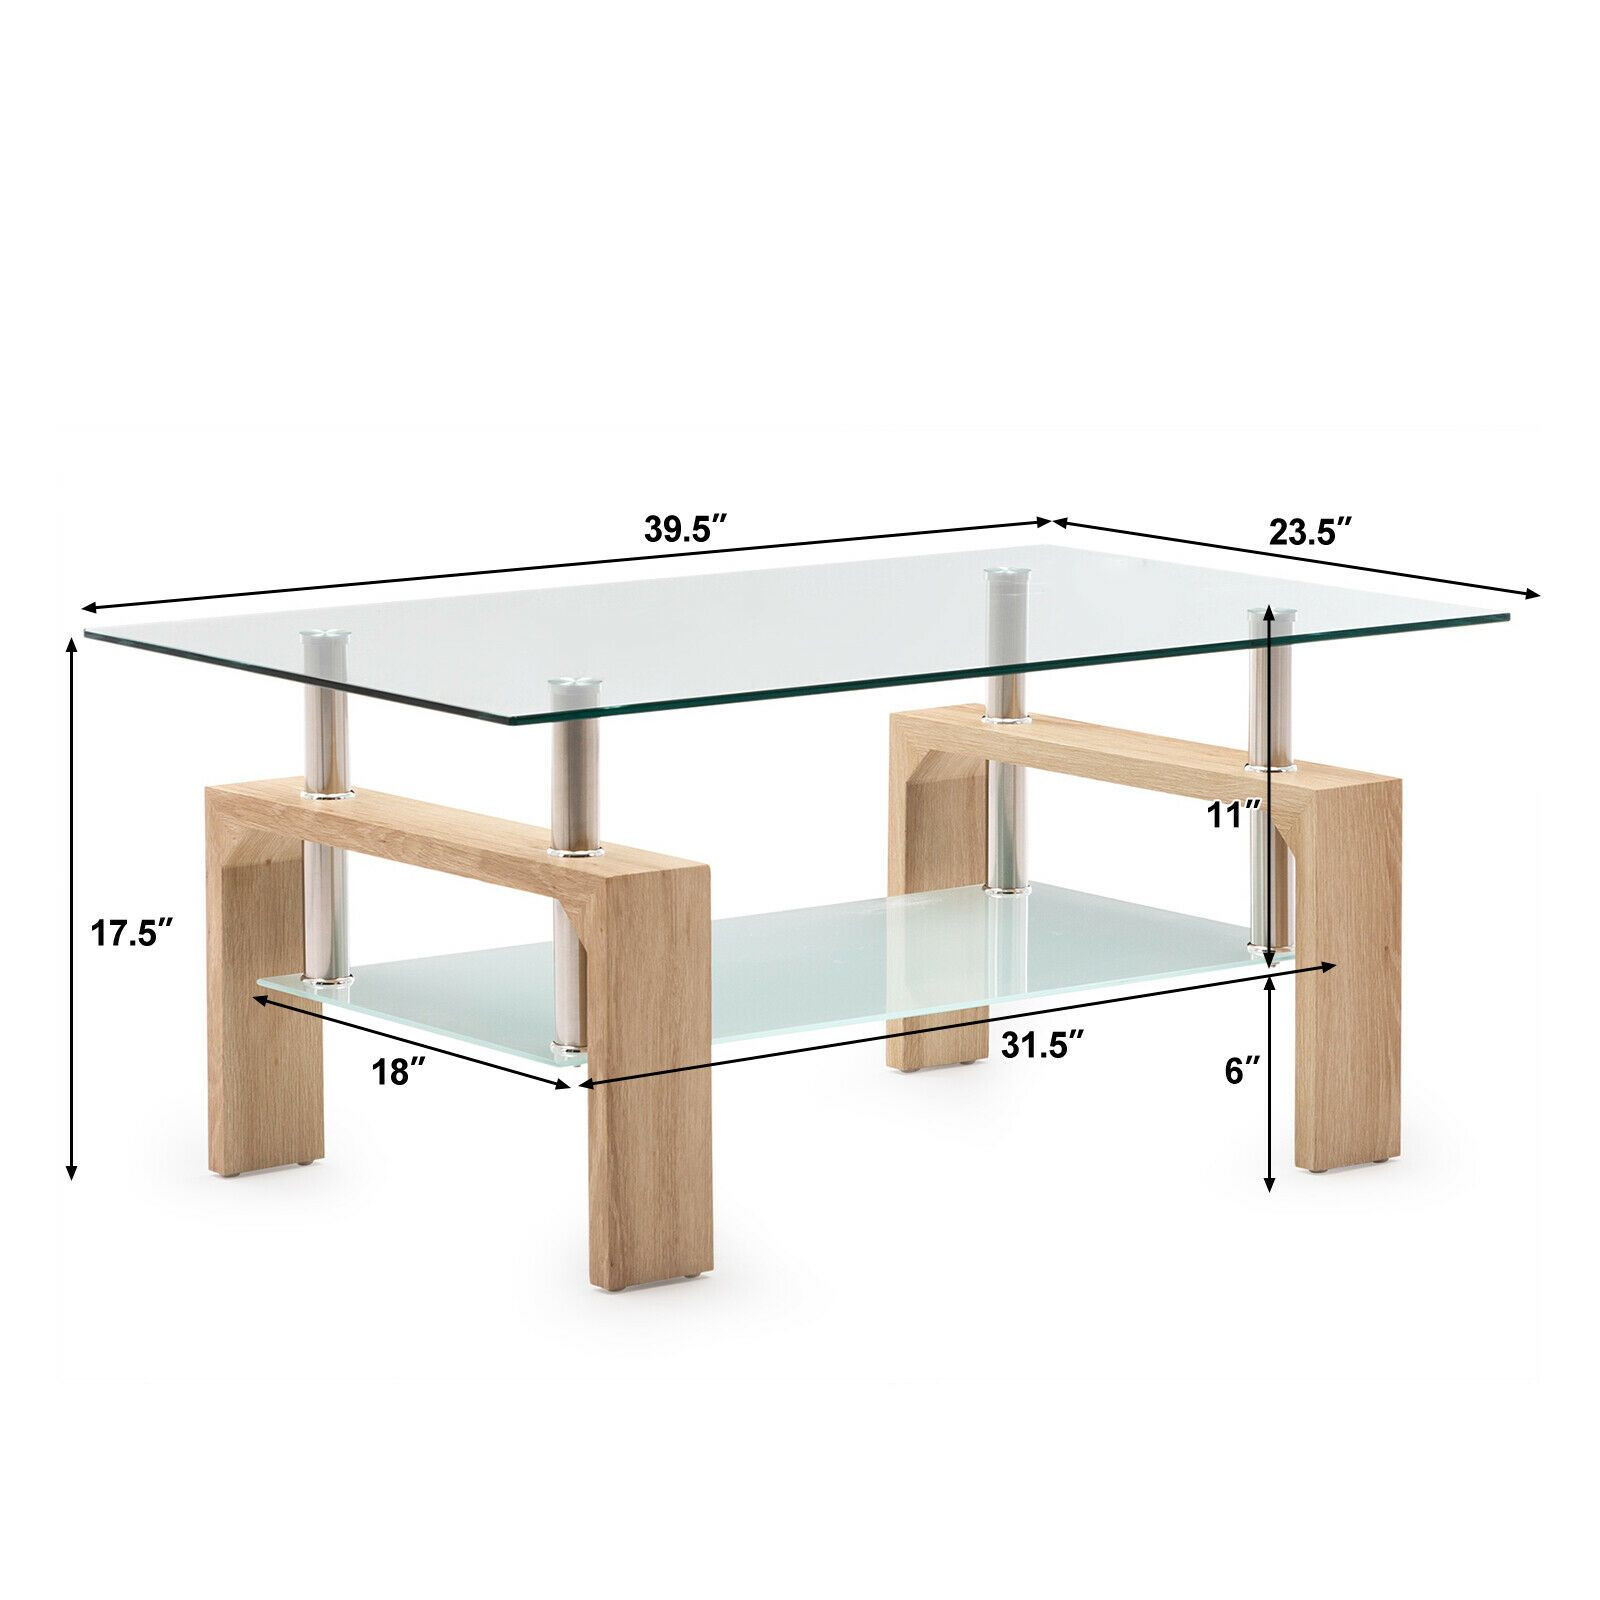 Modern Rectangle Cocktail Coffee Table Glass & Wood Living Room With Lower Shelf sale4better